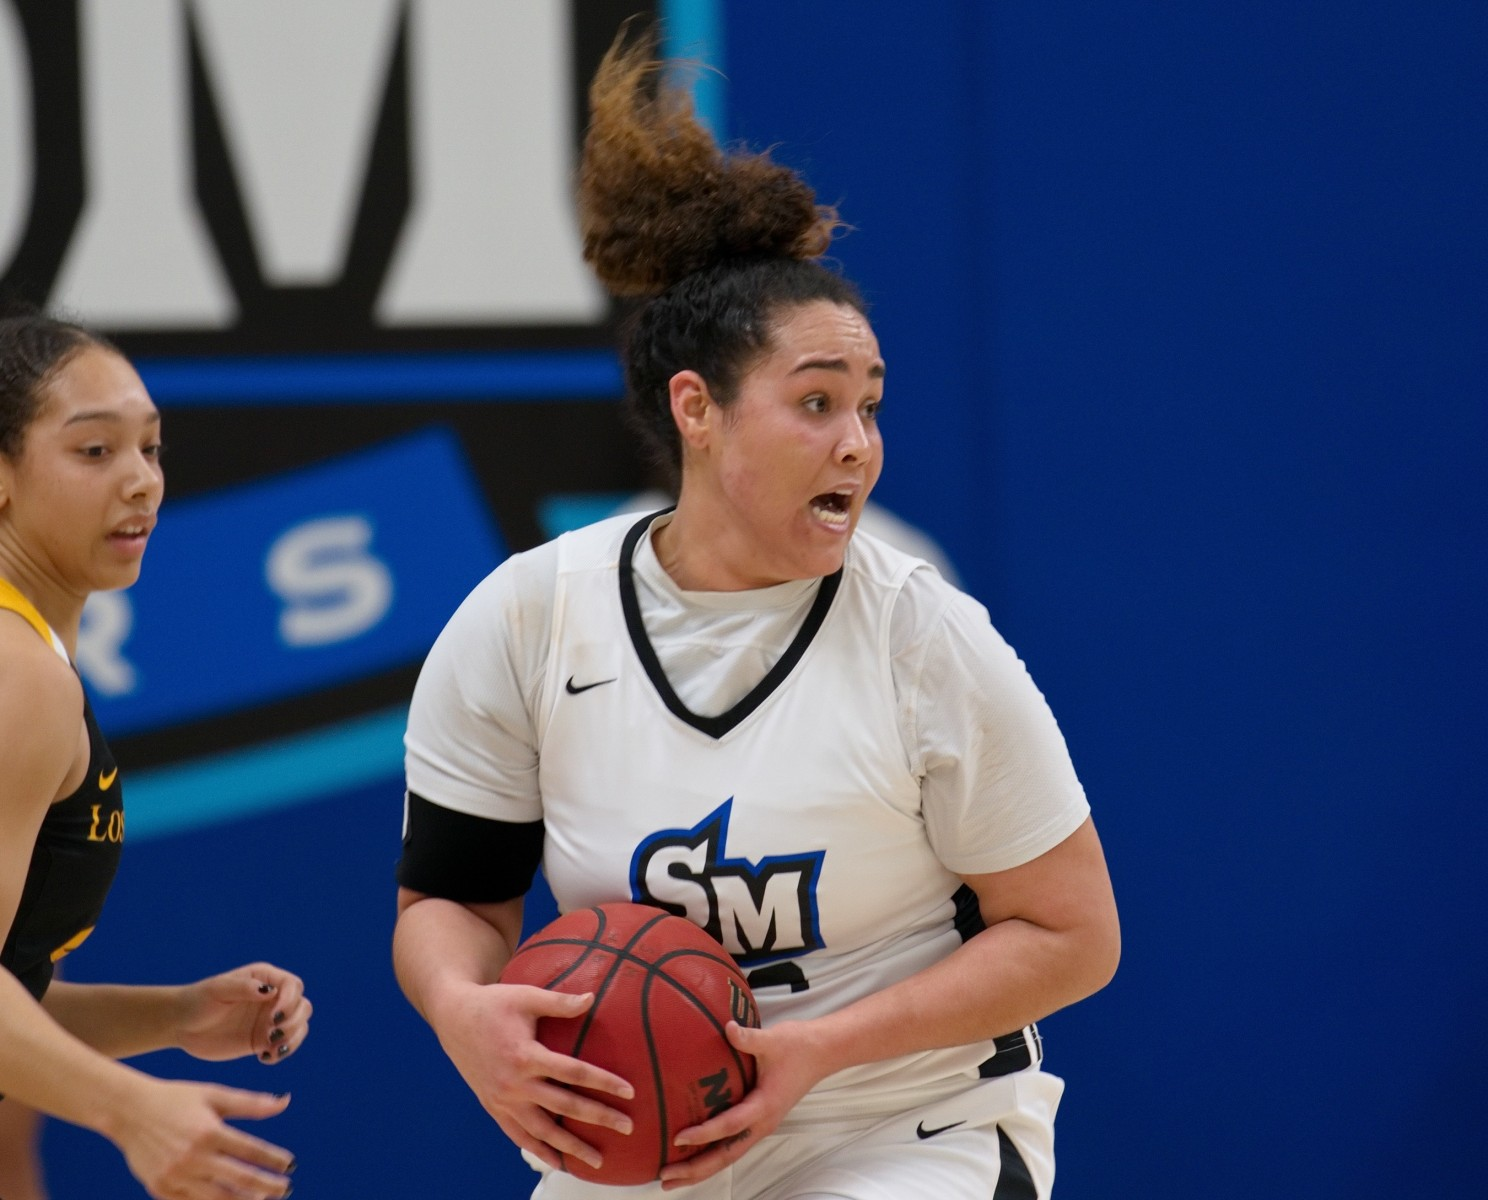 Jon'Nae Vermillion is entering her second season with the Cal State San Marcos women's basketball team after transferring from Mt. San Antonio College.